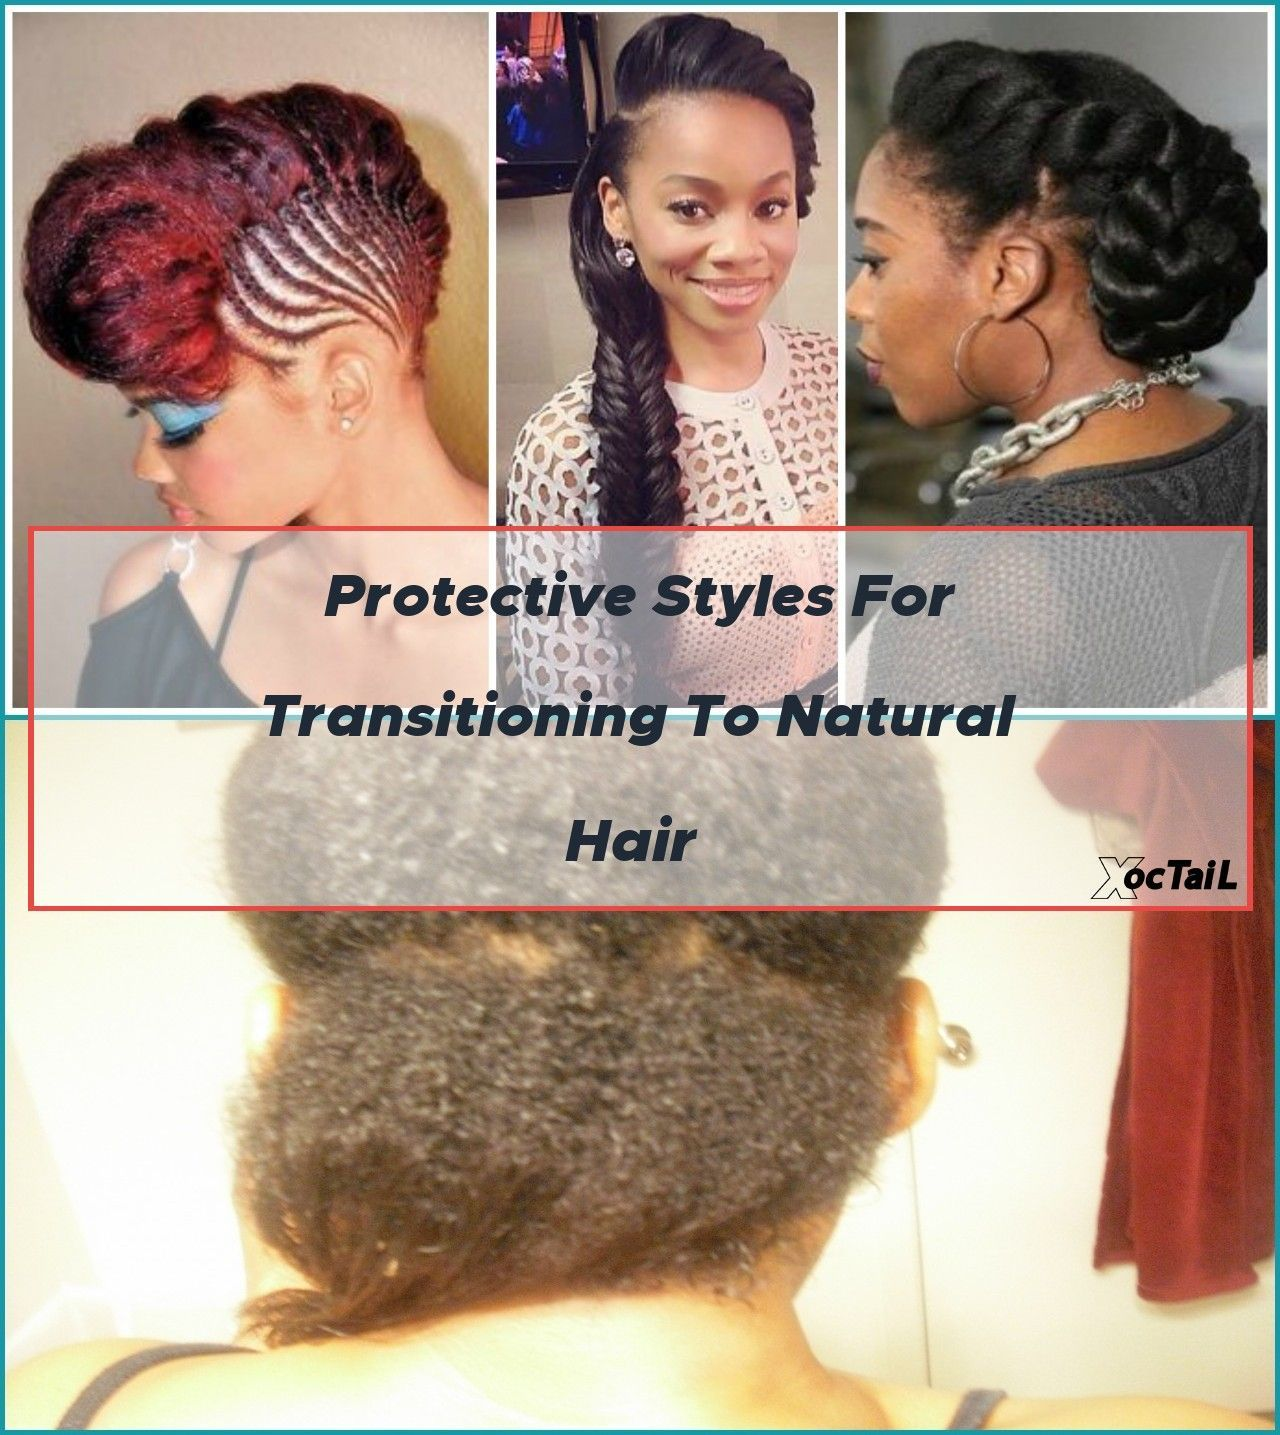 Healthy Happy Hair Transitioning To Natural Hair Need Help Protective Styles For Transitioning T In 2020 Natural Hair Transitioning Natural Hair Styles Happy Hair